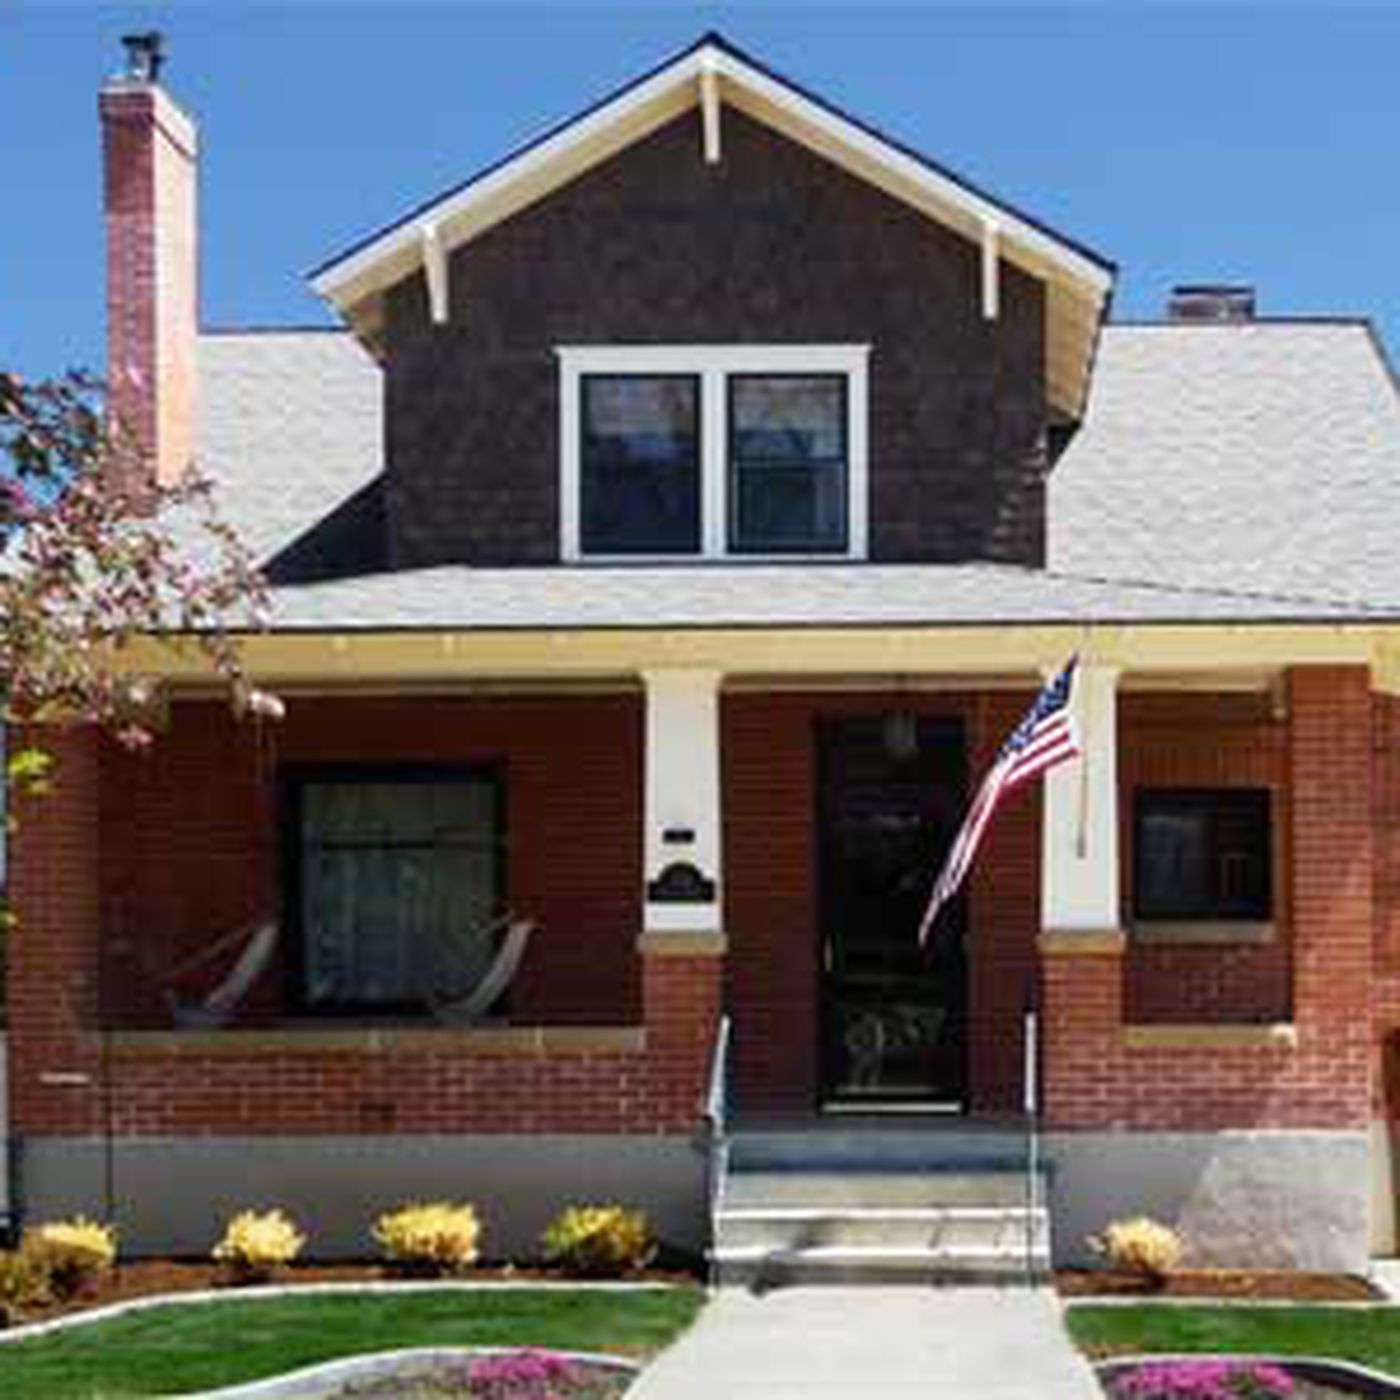 Best Old House Neighborhoods 2011: Cottages & Bungalows - This Old ...